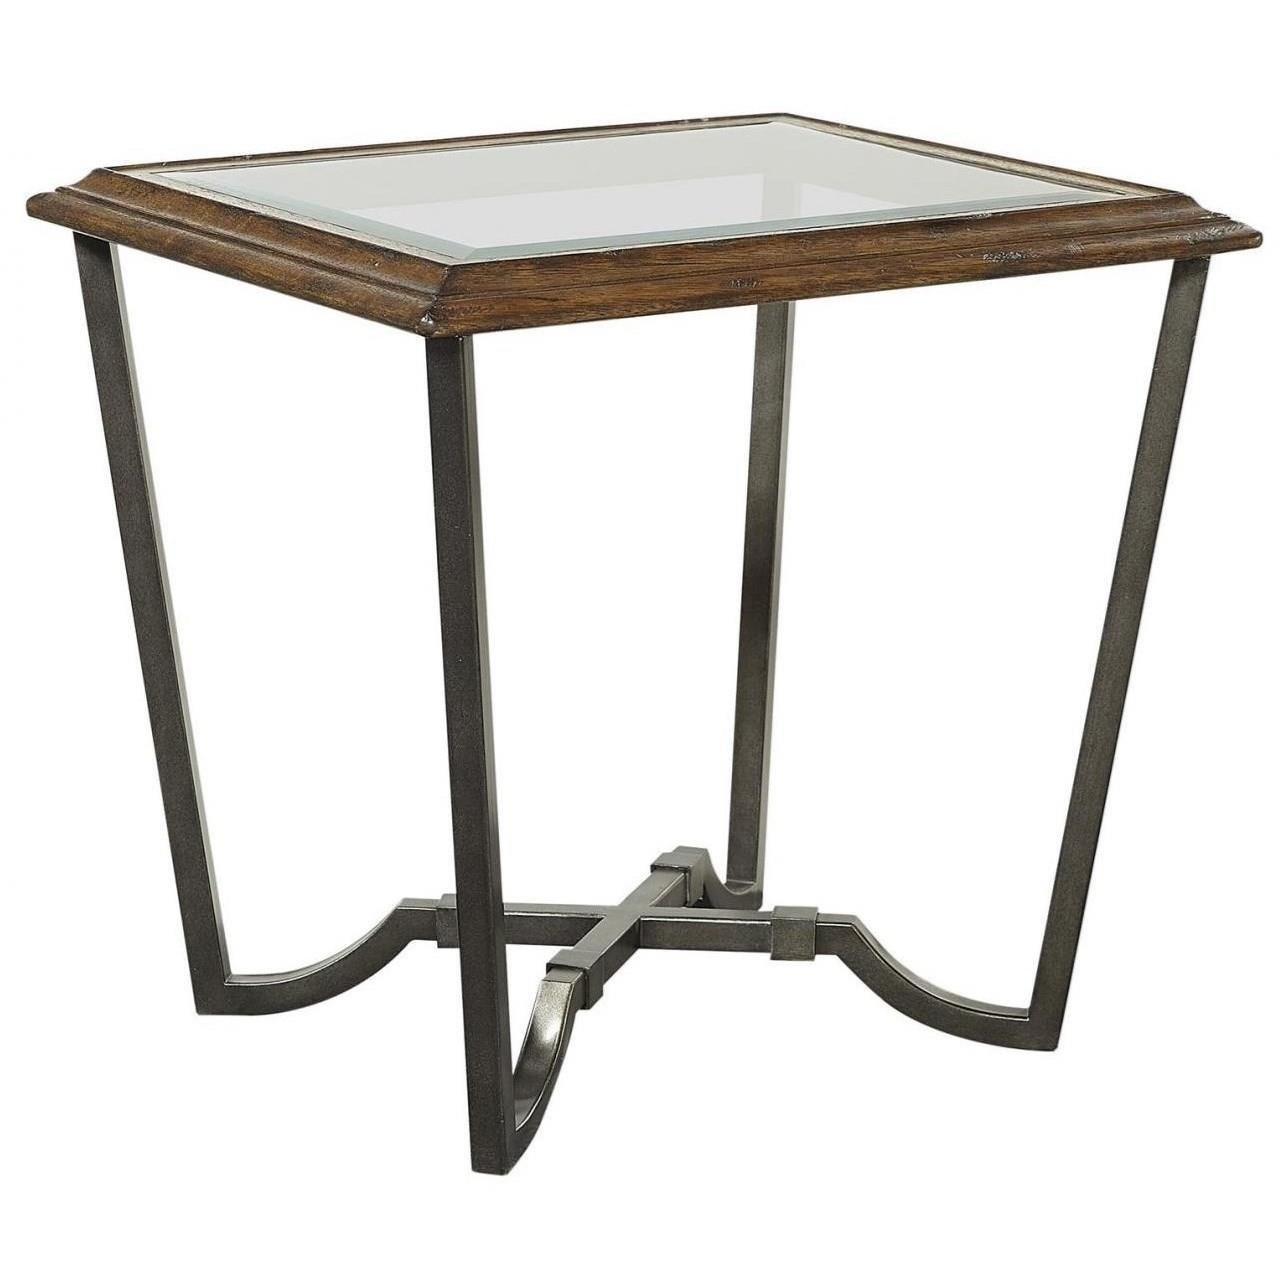 Mosaic End Table with Glass Top by Aspenhome at Walker's Furniture